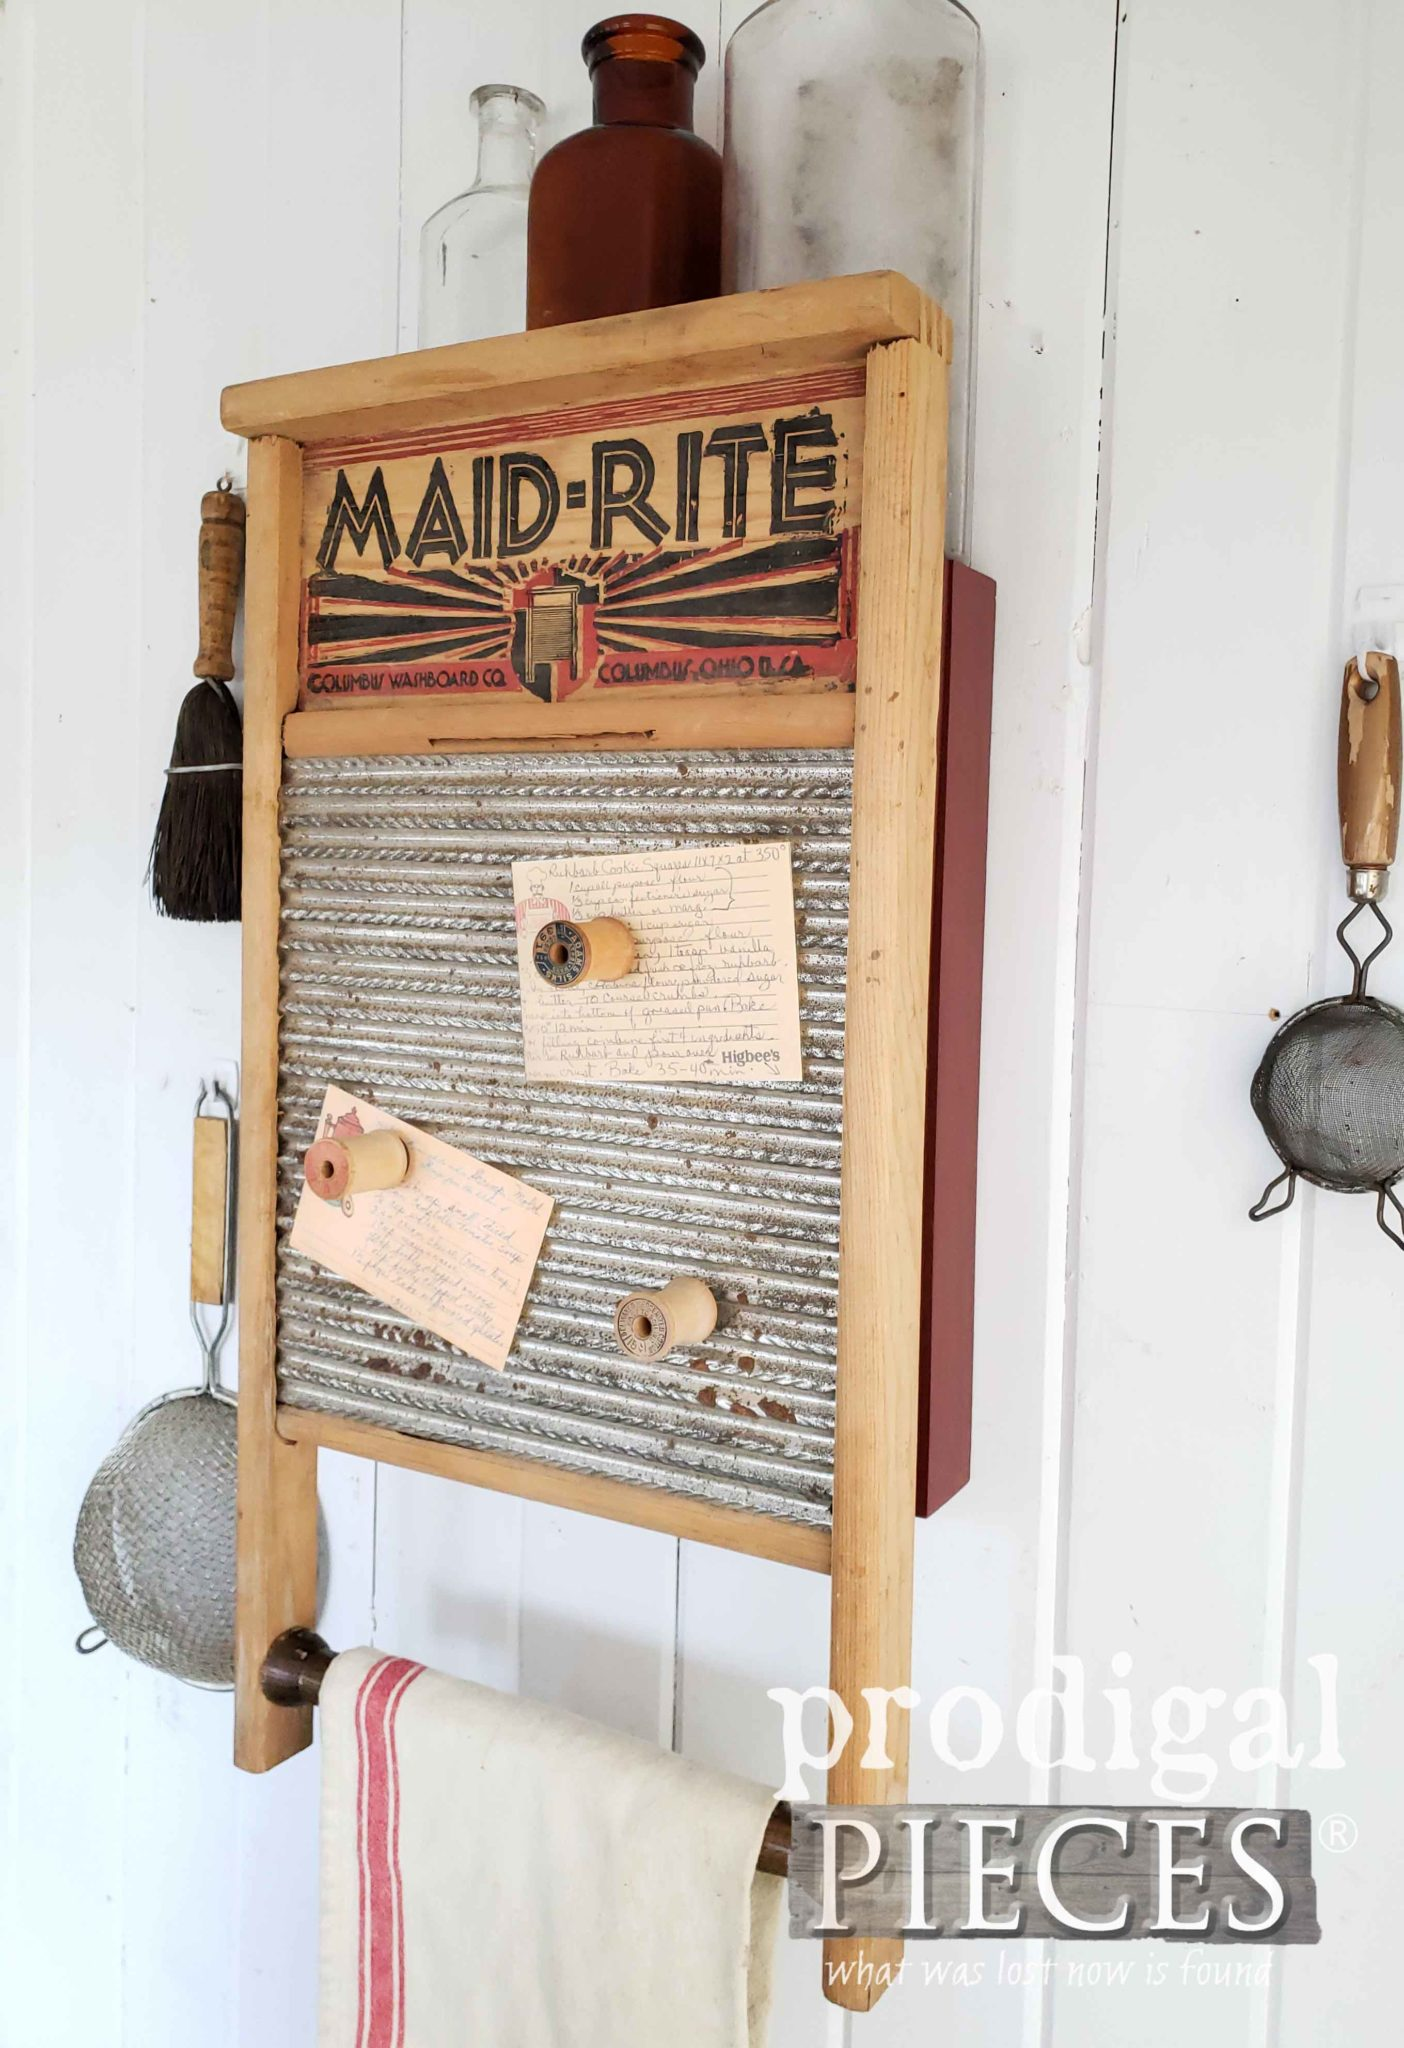 Upcycled Washboard Cupboard with Hidden Storage for Kitchen, Laundry, Bath, and more | by Larissa of Prodigal Pieces | prodigalpieces.com #prodigalpieces #diy #handmade #farmhouse #homedecor #vintage